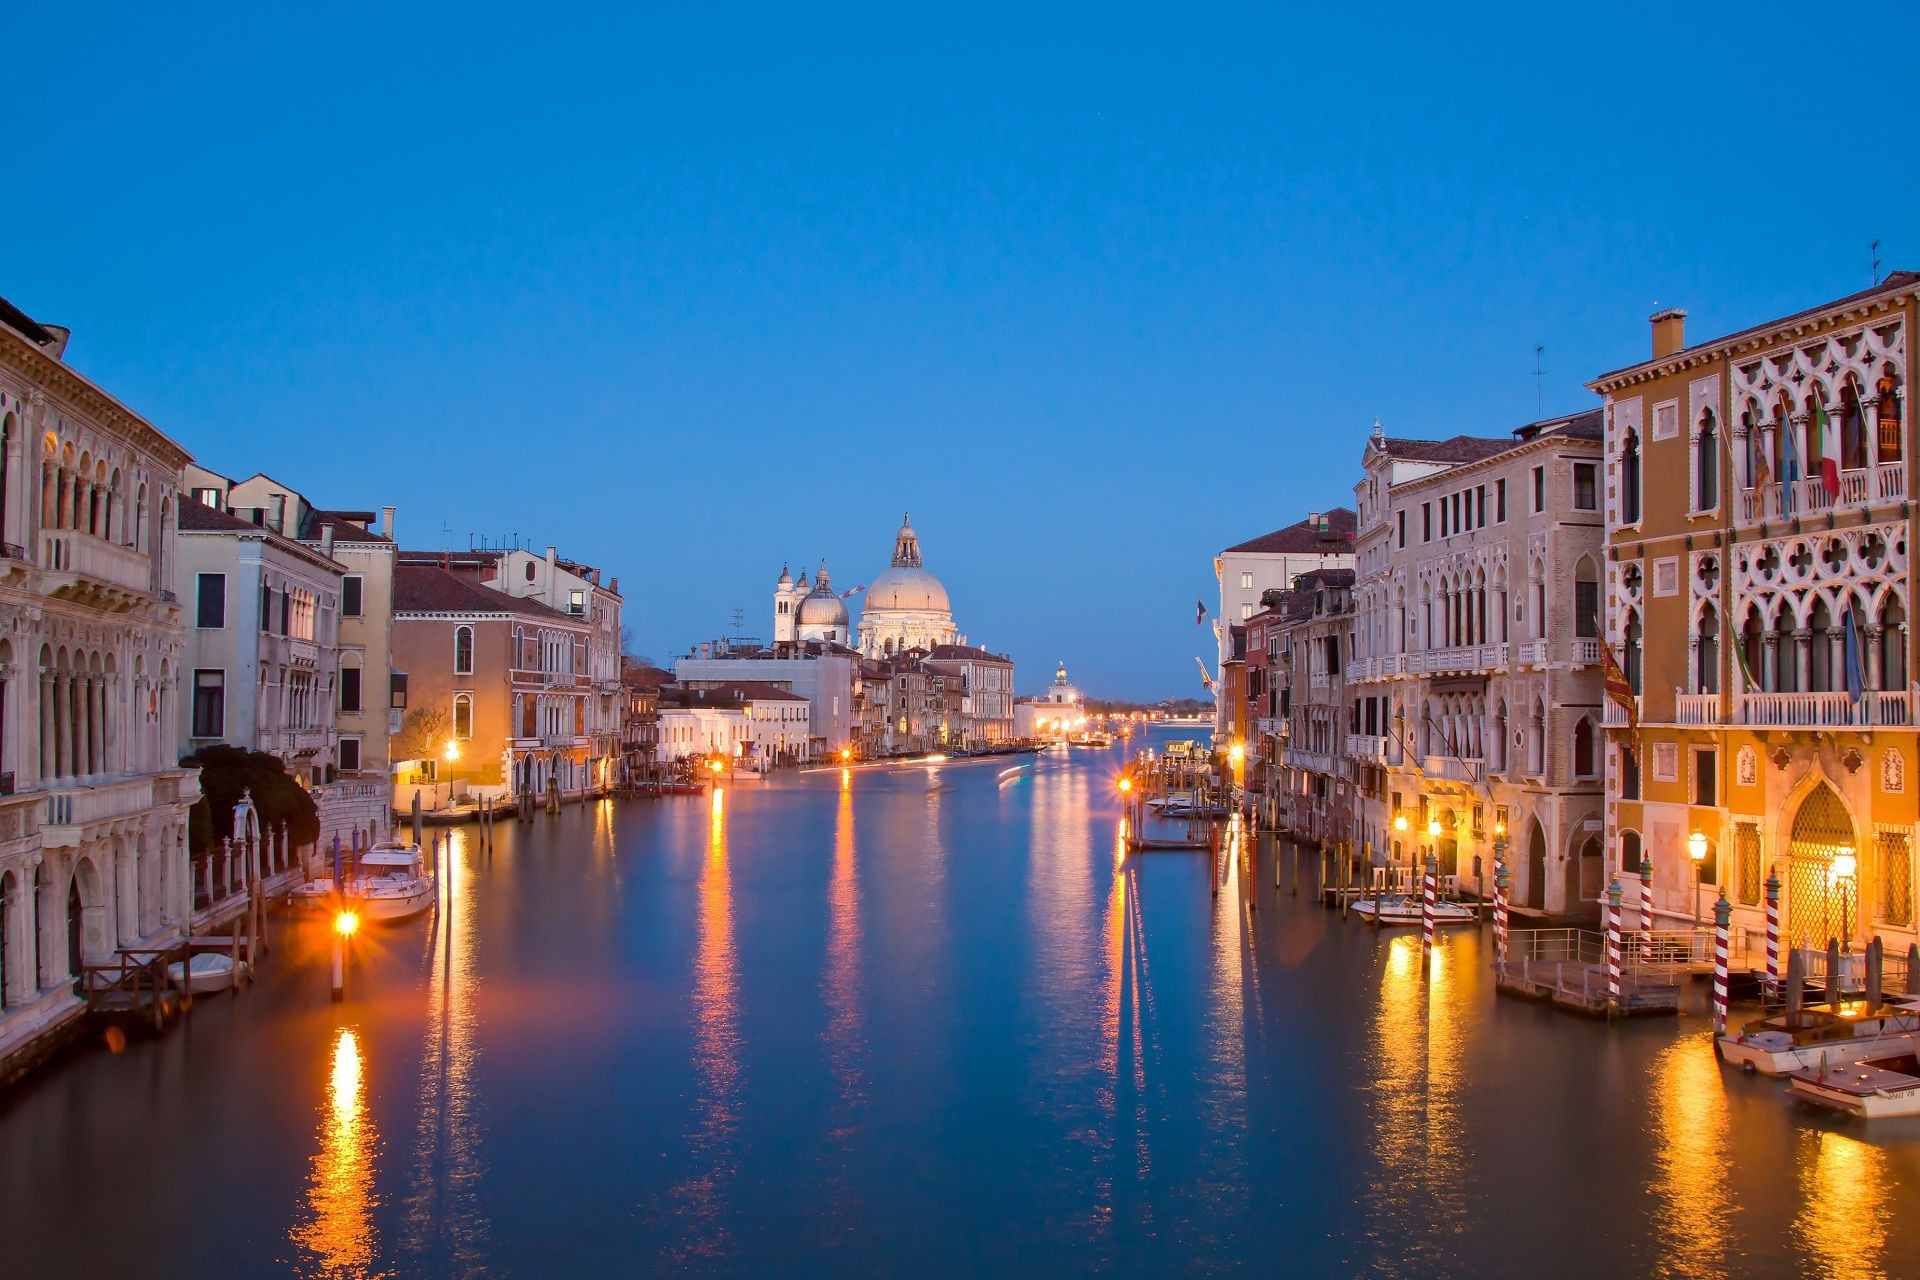 city water canal travel architecture dusk outdoors venetian sunset evening building bridge illuminated river reflection gondola tourism sky town